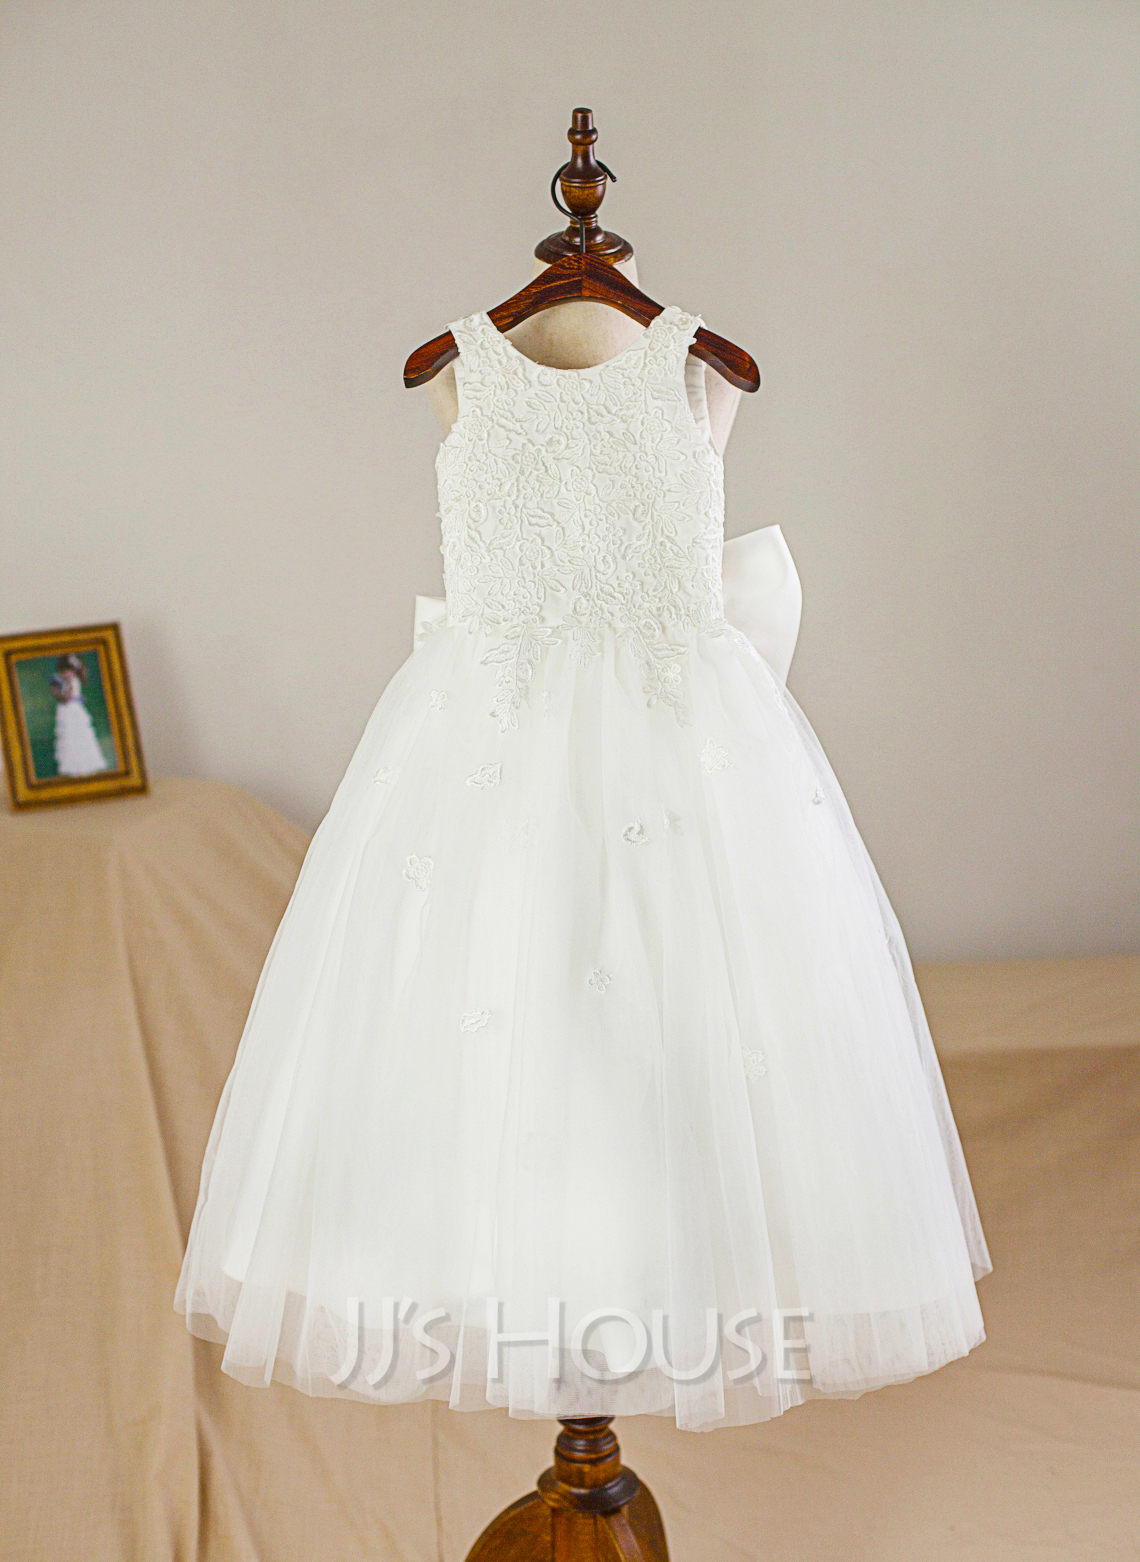 ff4fba6d0 A-Line/Princess Tea-length Flower Girl Dress - Satin/Tulle Sleeveless.  Loading zoom